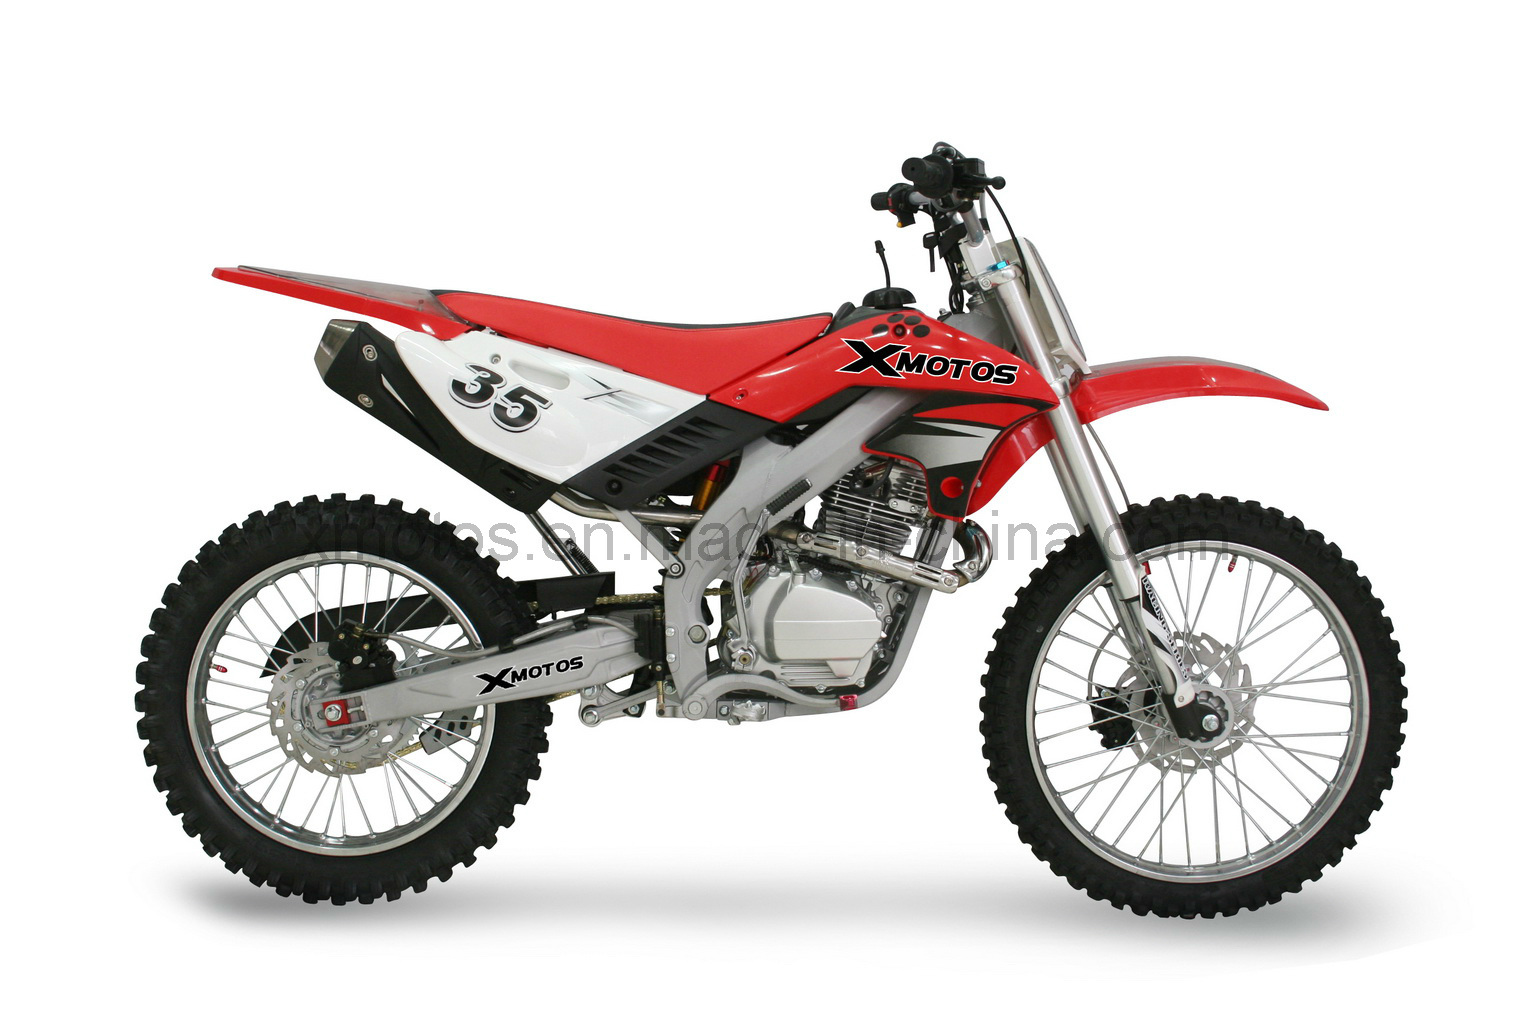 china dirt bike xzr250 xb 35 250cc red china dirt bike 250cc dirt bike. Black Bedroom Furniture Sets. Home Design Ideas